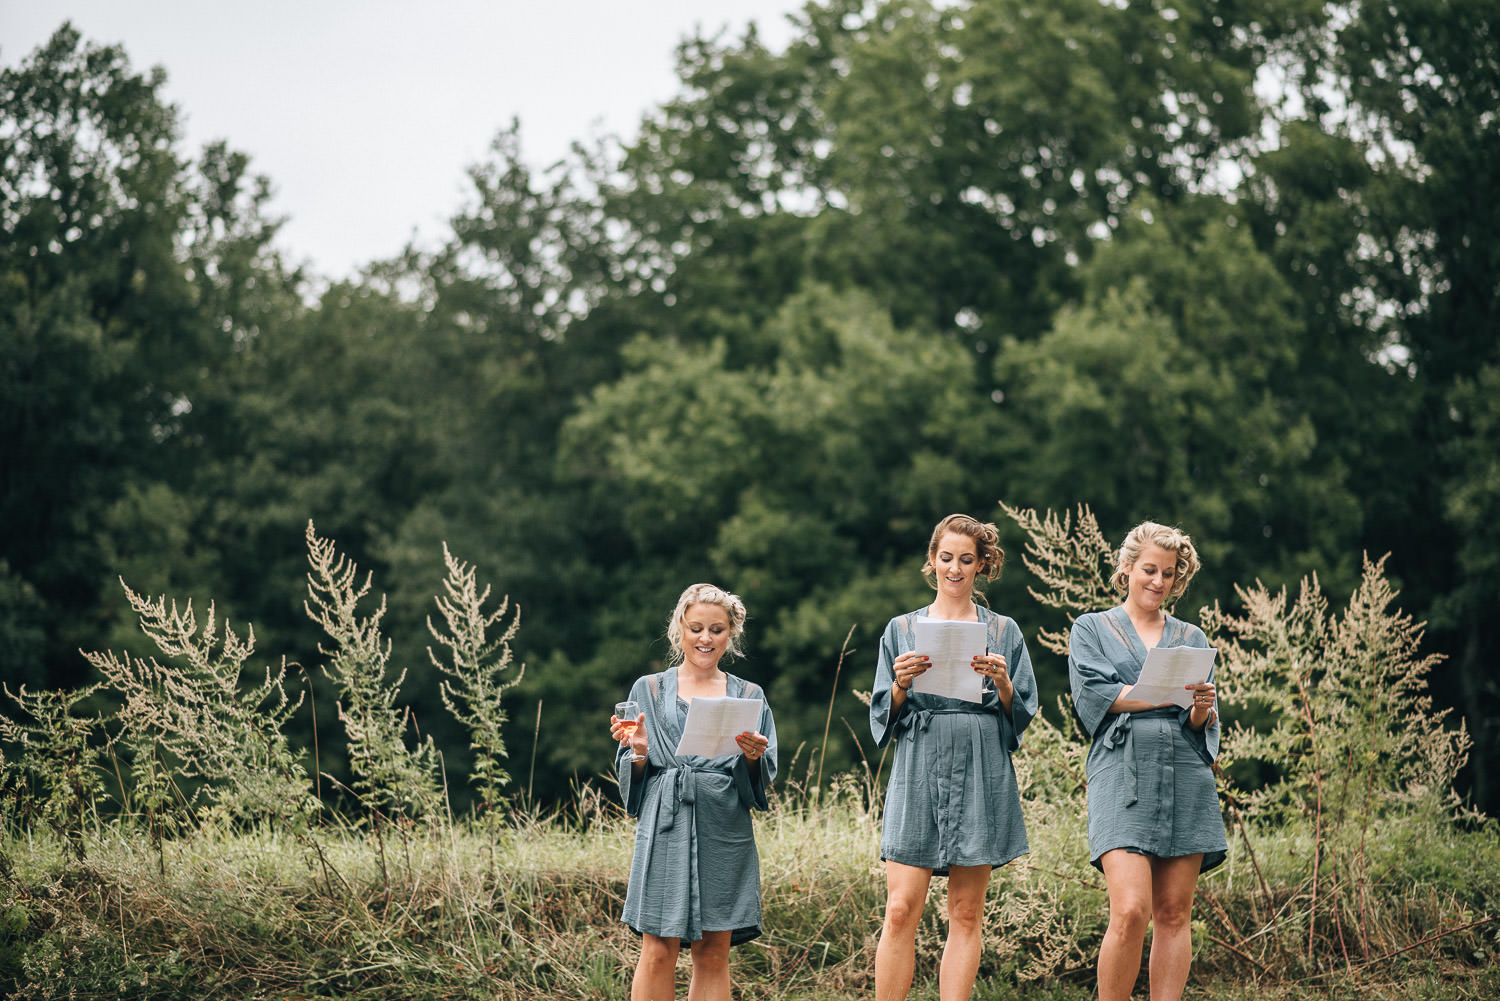 Bridesmaids rehearsing speeches at Chateau de la Bourlie Wedding by creative and alternative destination wedding photographer the shannons photography